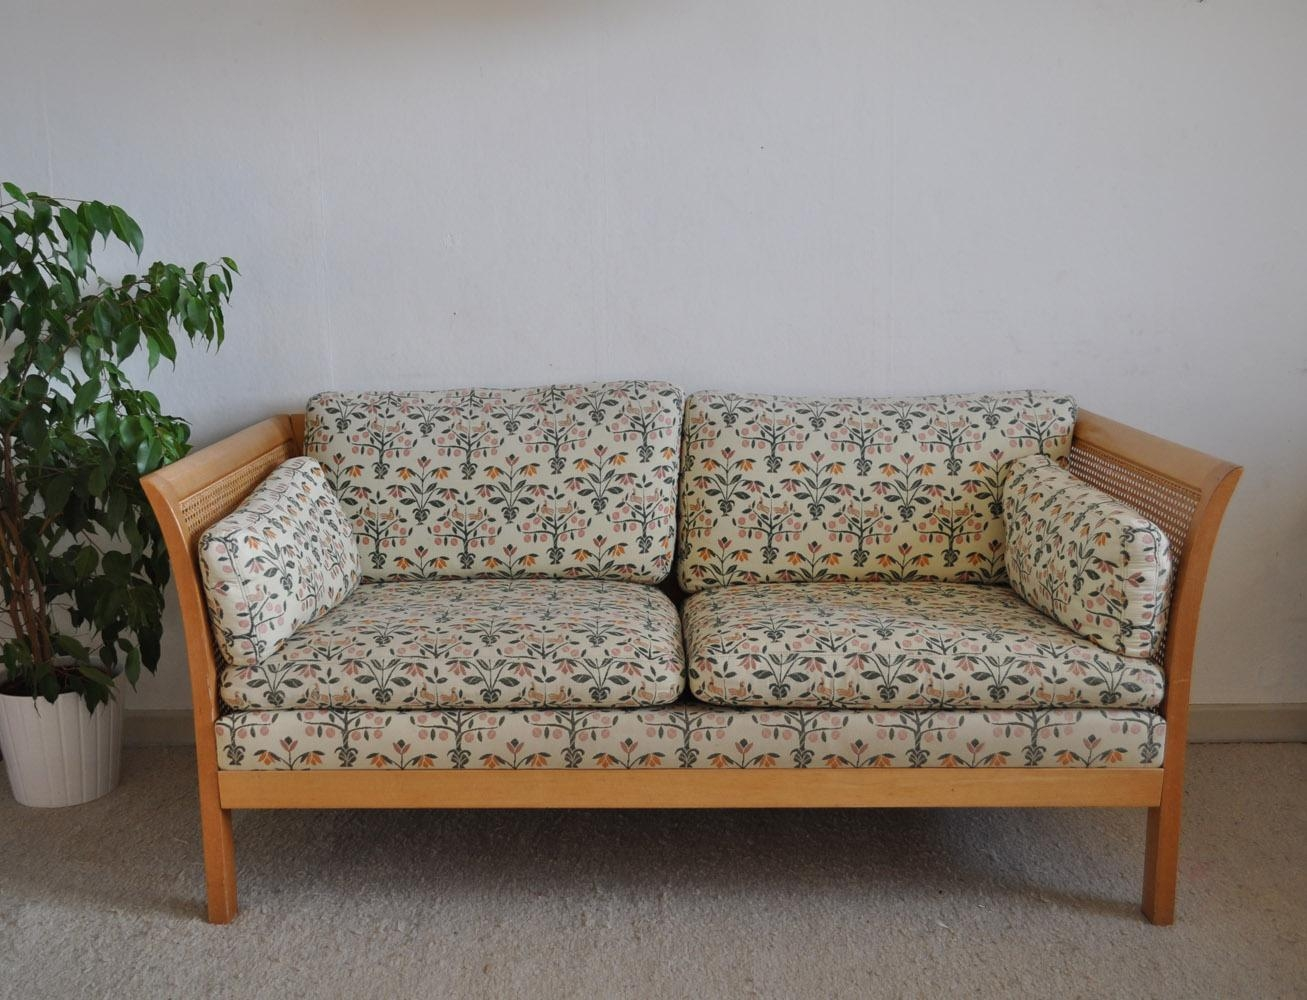 Vintage Rattan Two Seater Sofa From Arne Norell For Sale At Pamono For Two Seater Sofas (Image 20 of 20)